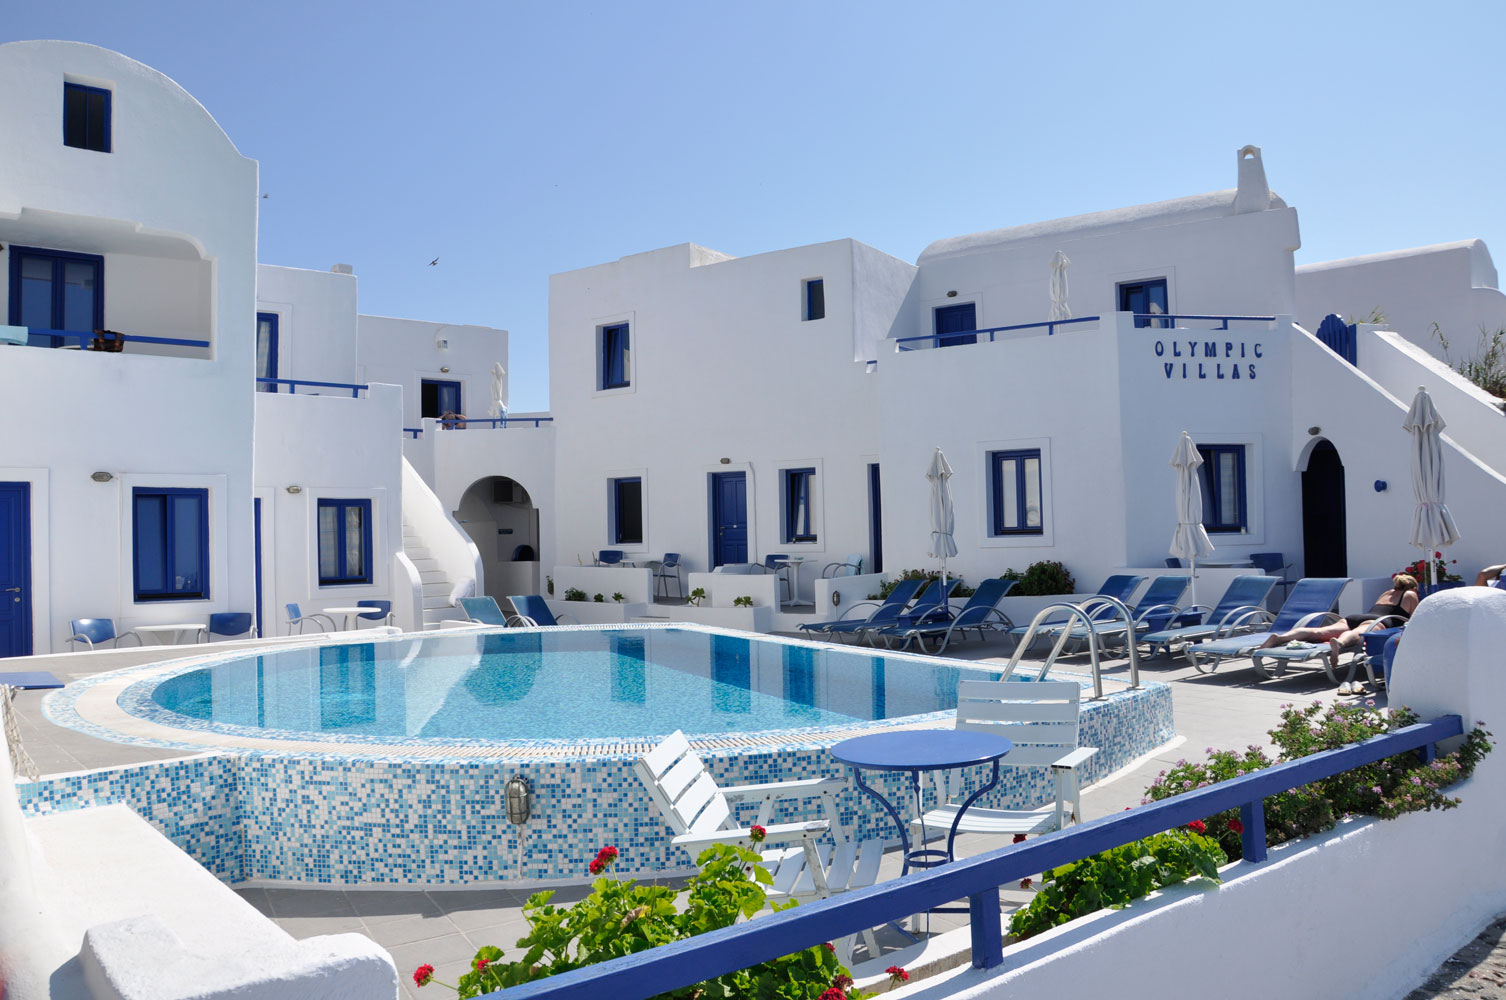 Olympic villas hotels in oia santorini greece for Hotels santorin